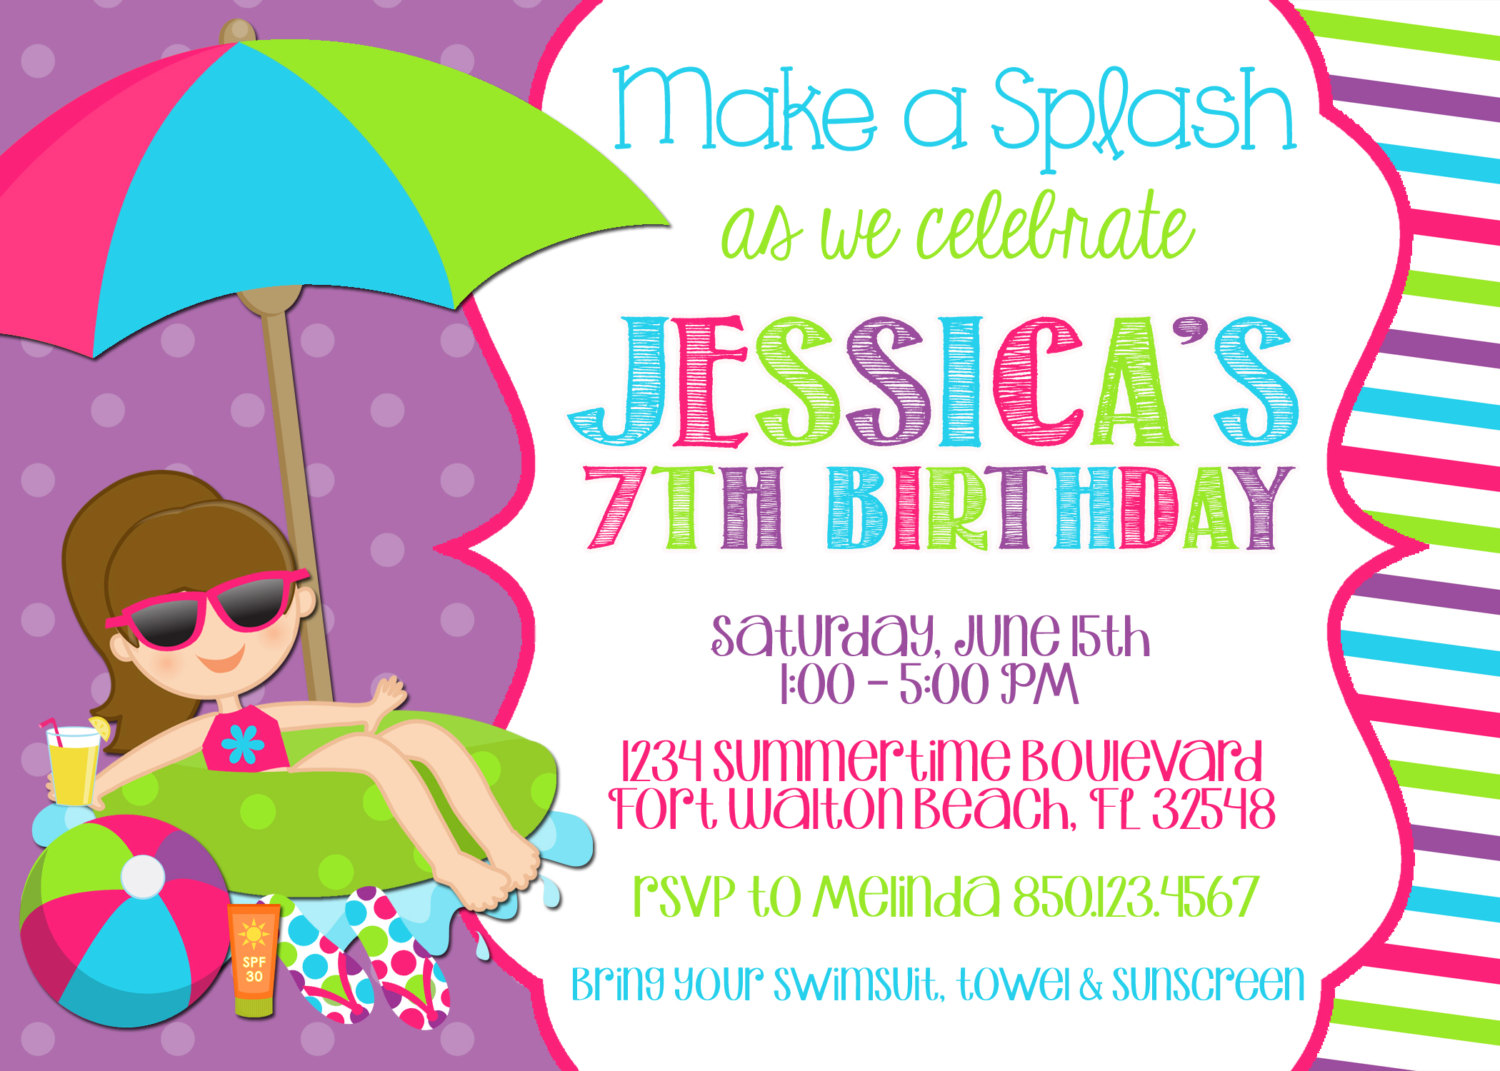 7th birthday party invitation ideas ; Pool-party-birthday-invitations-for-a-exceptional-party-invitation-design-with-exceptional-layout-1